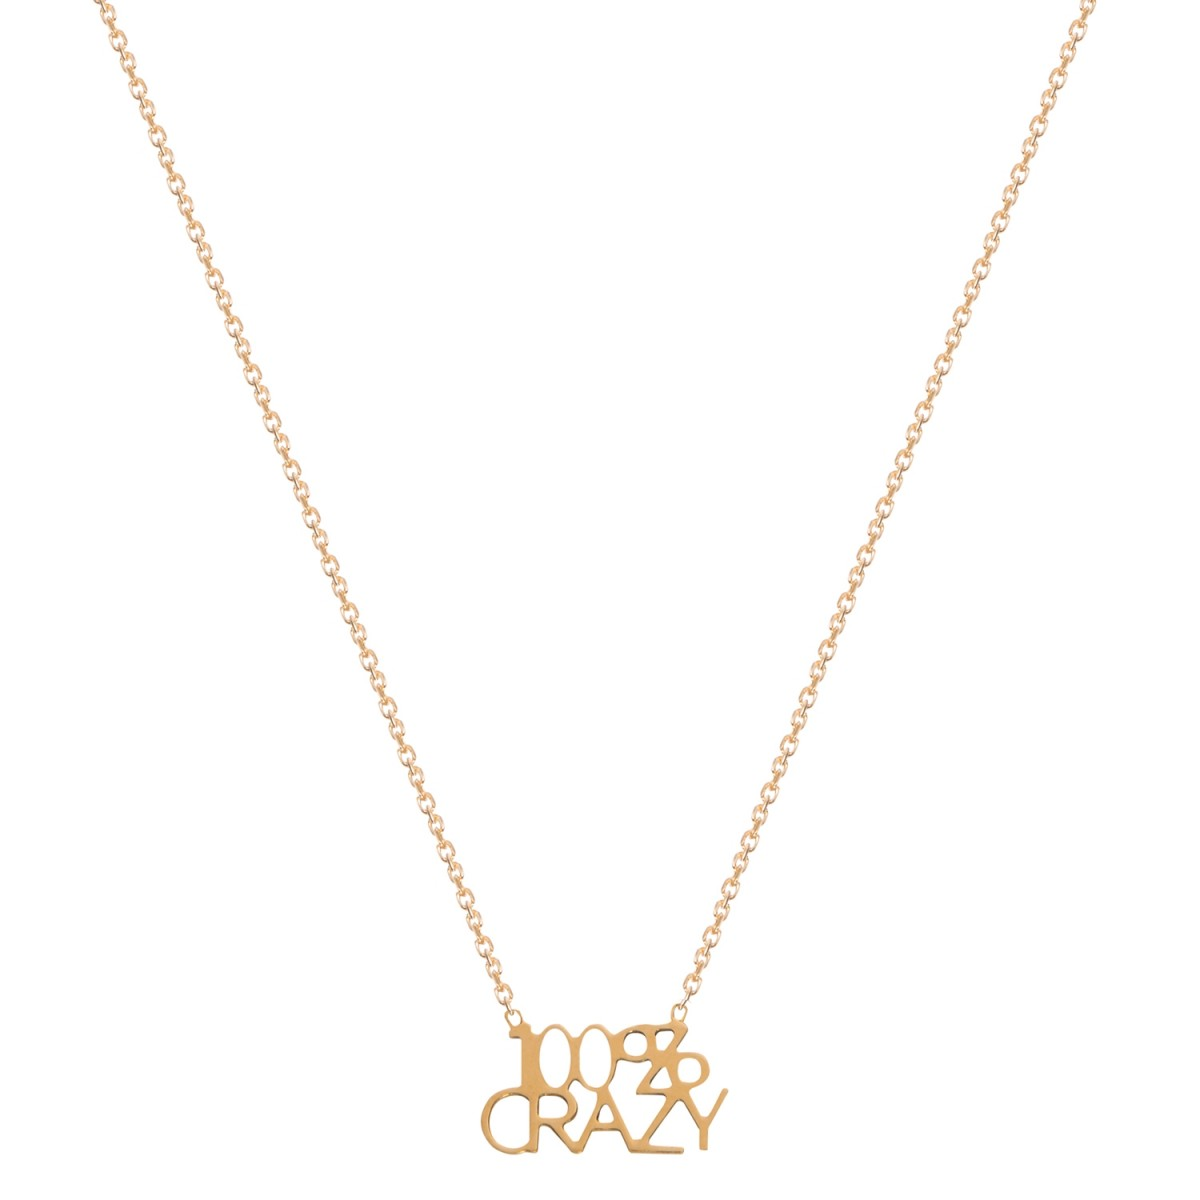 Necklace  Letters 100% Crazy Gold Plated